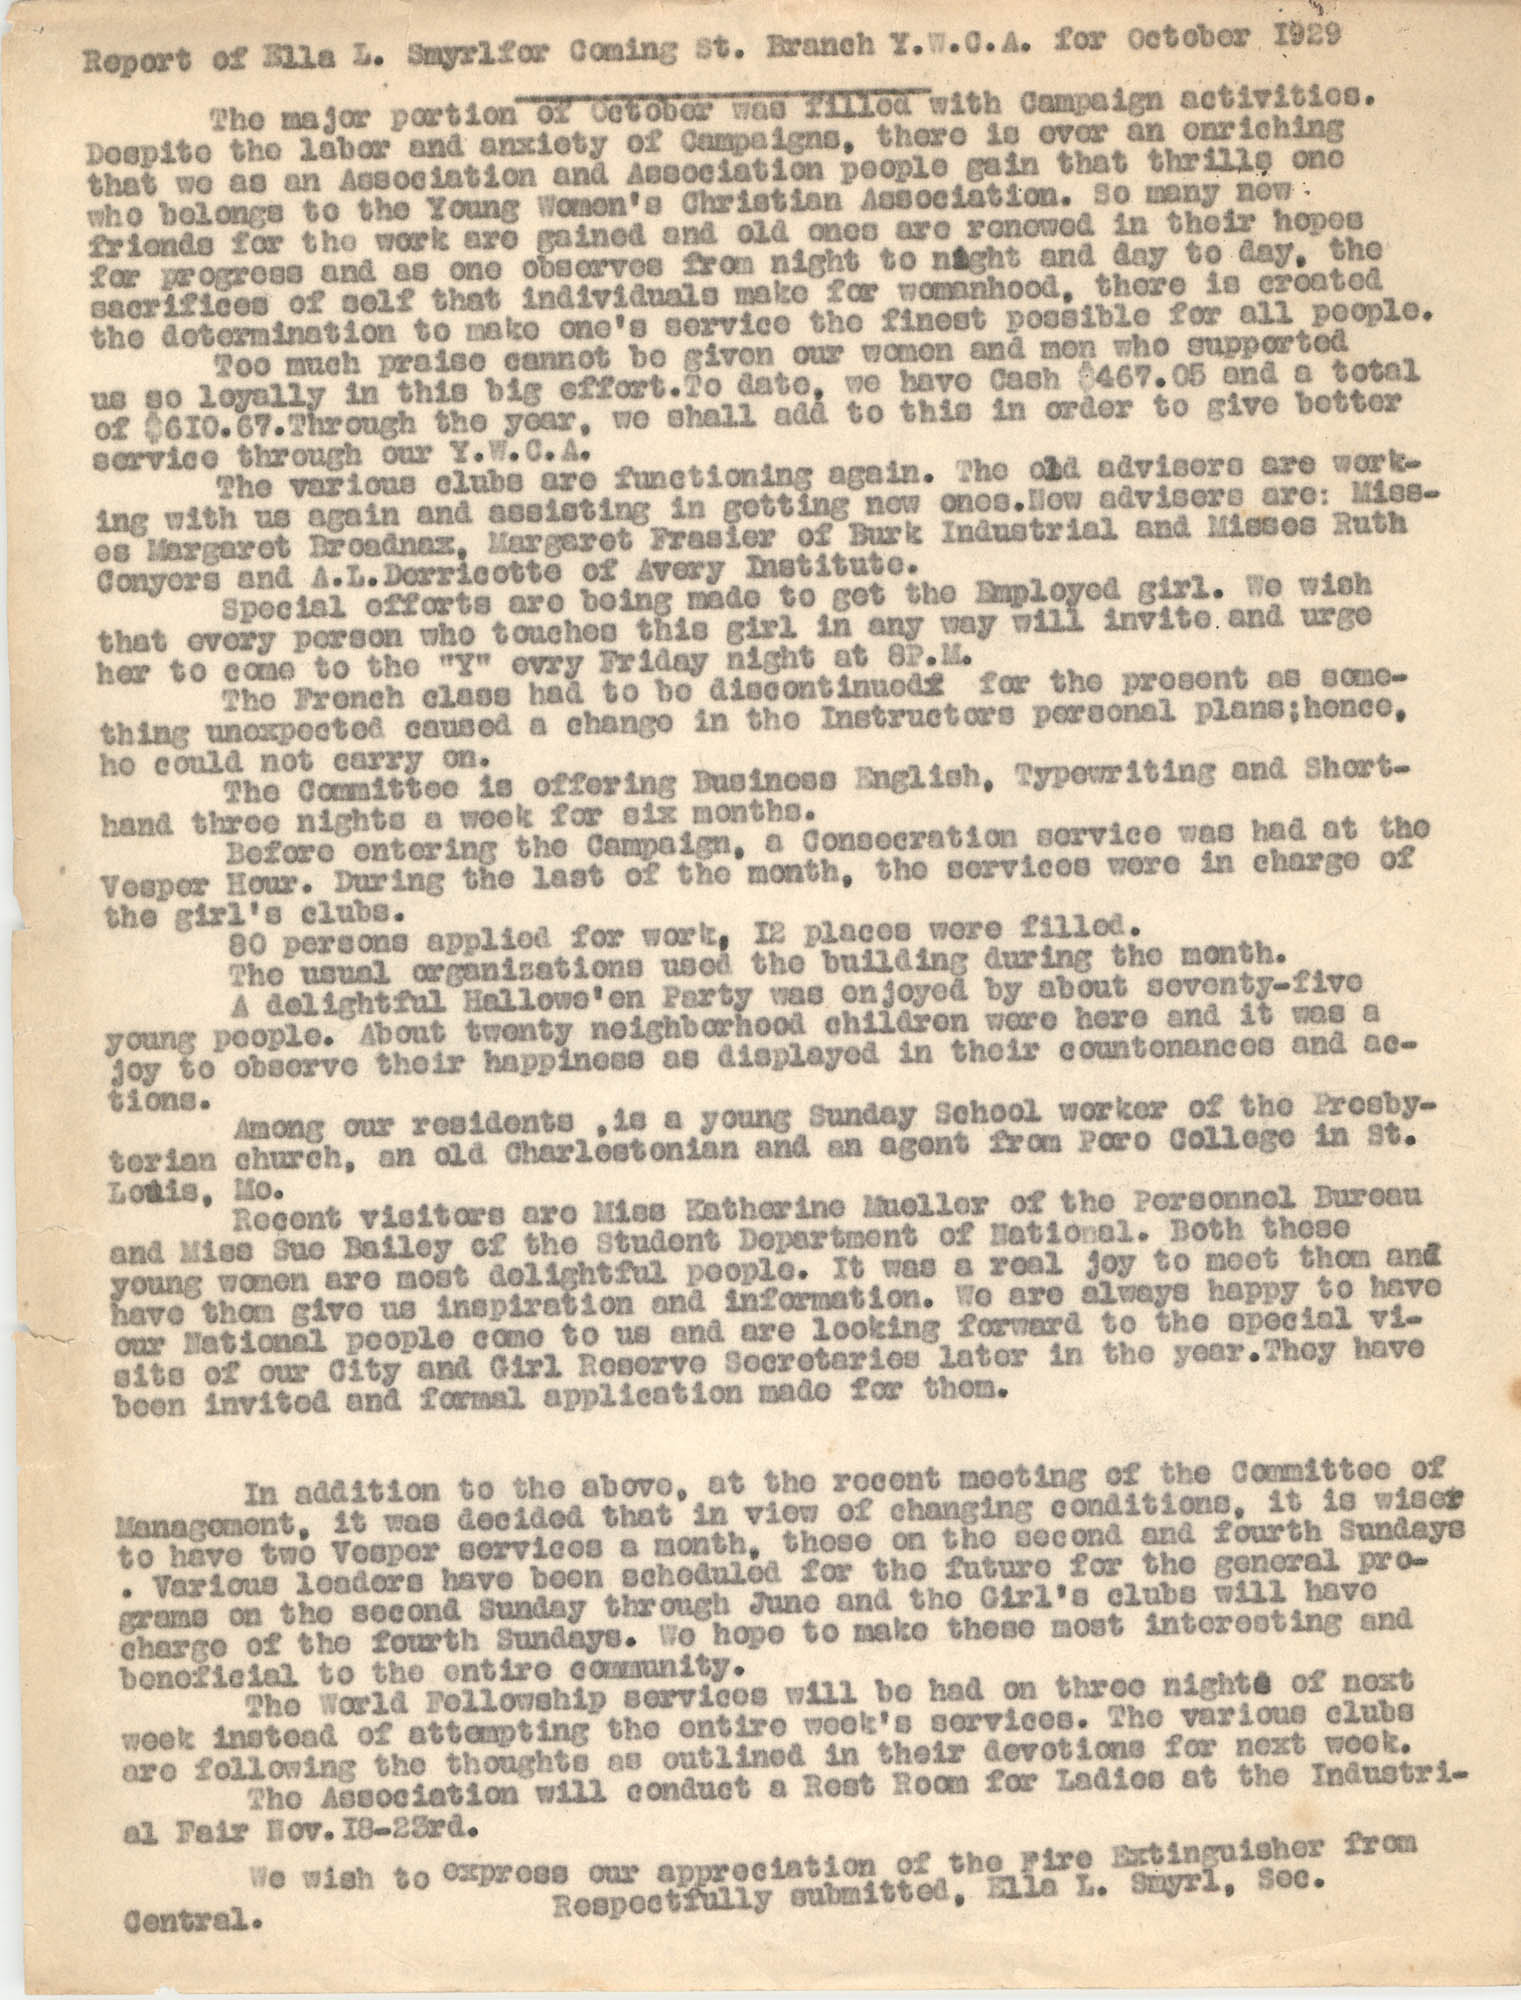 Monthly Report for the Coming Street Y.W.C.A., October 1929